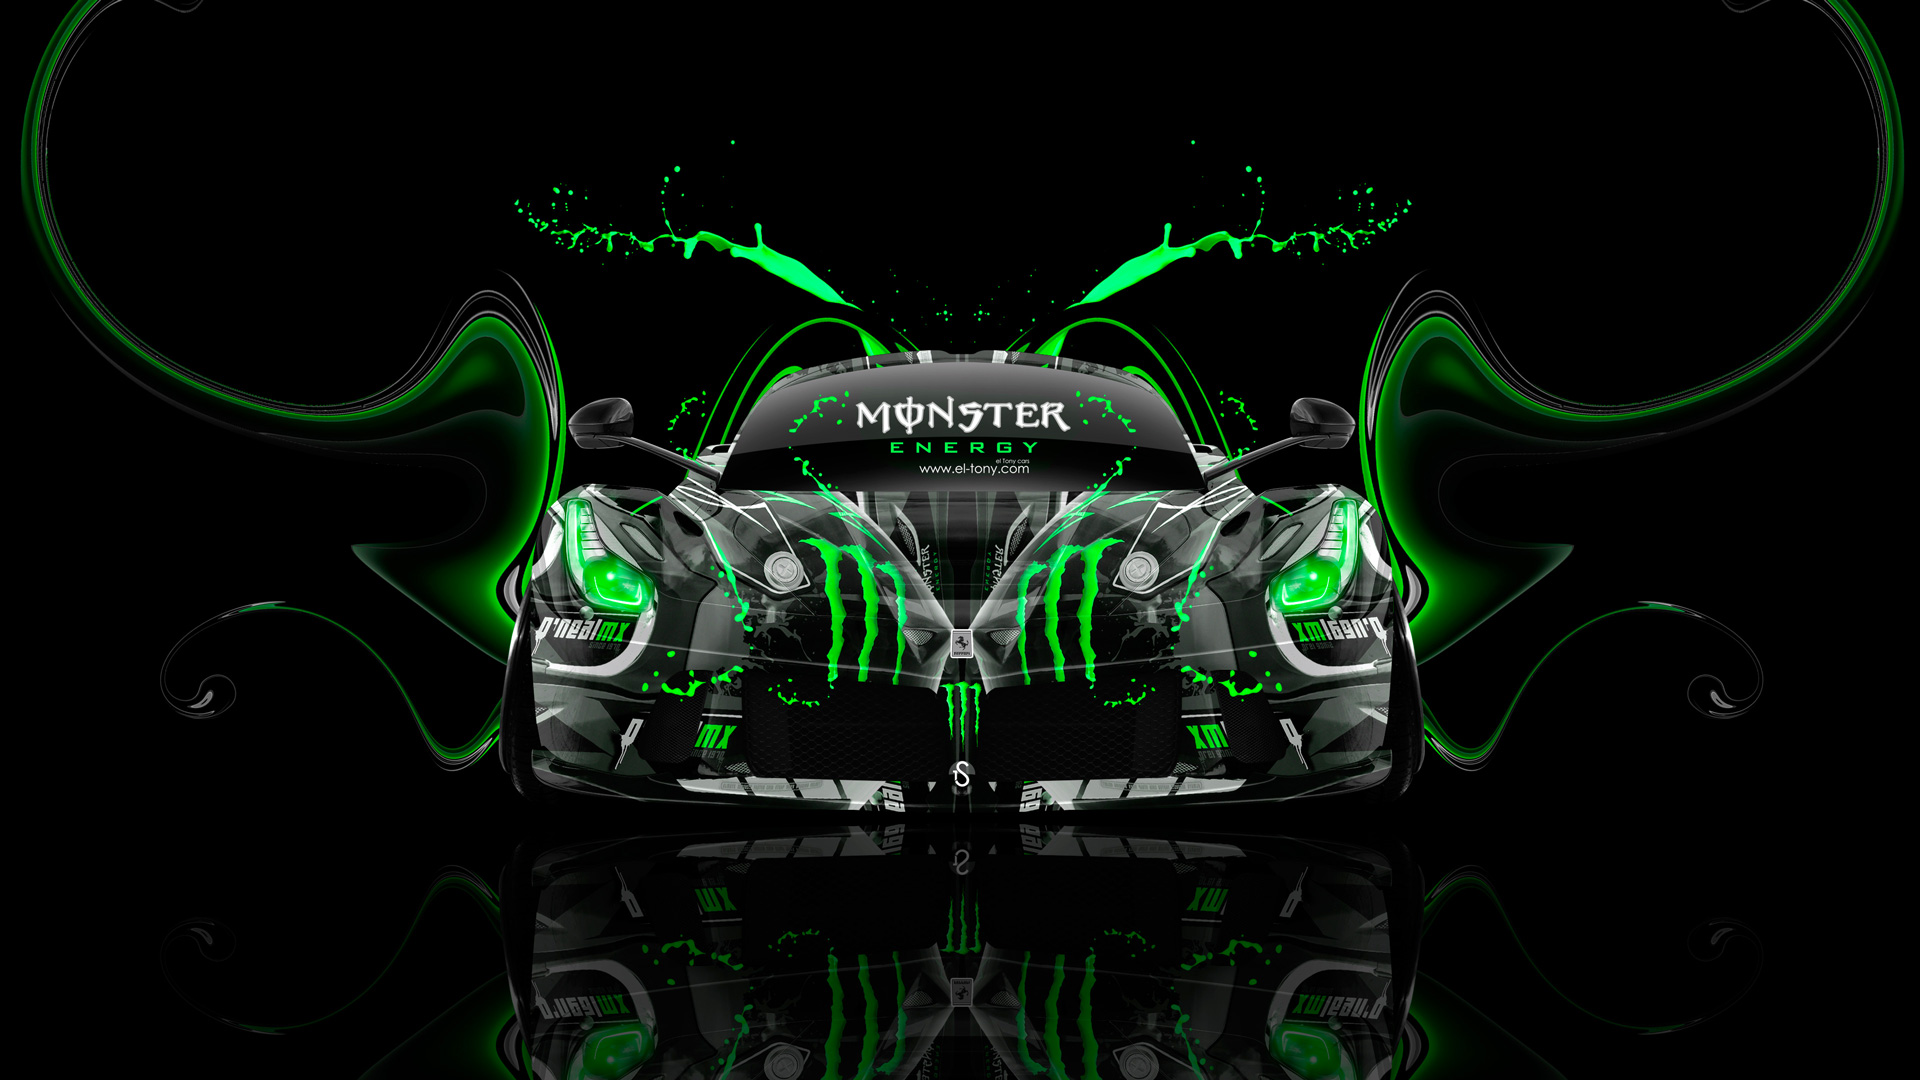 Superbe Monster Energy Ferrari Laferrari Front Plastic Car 2014